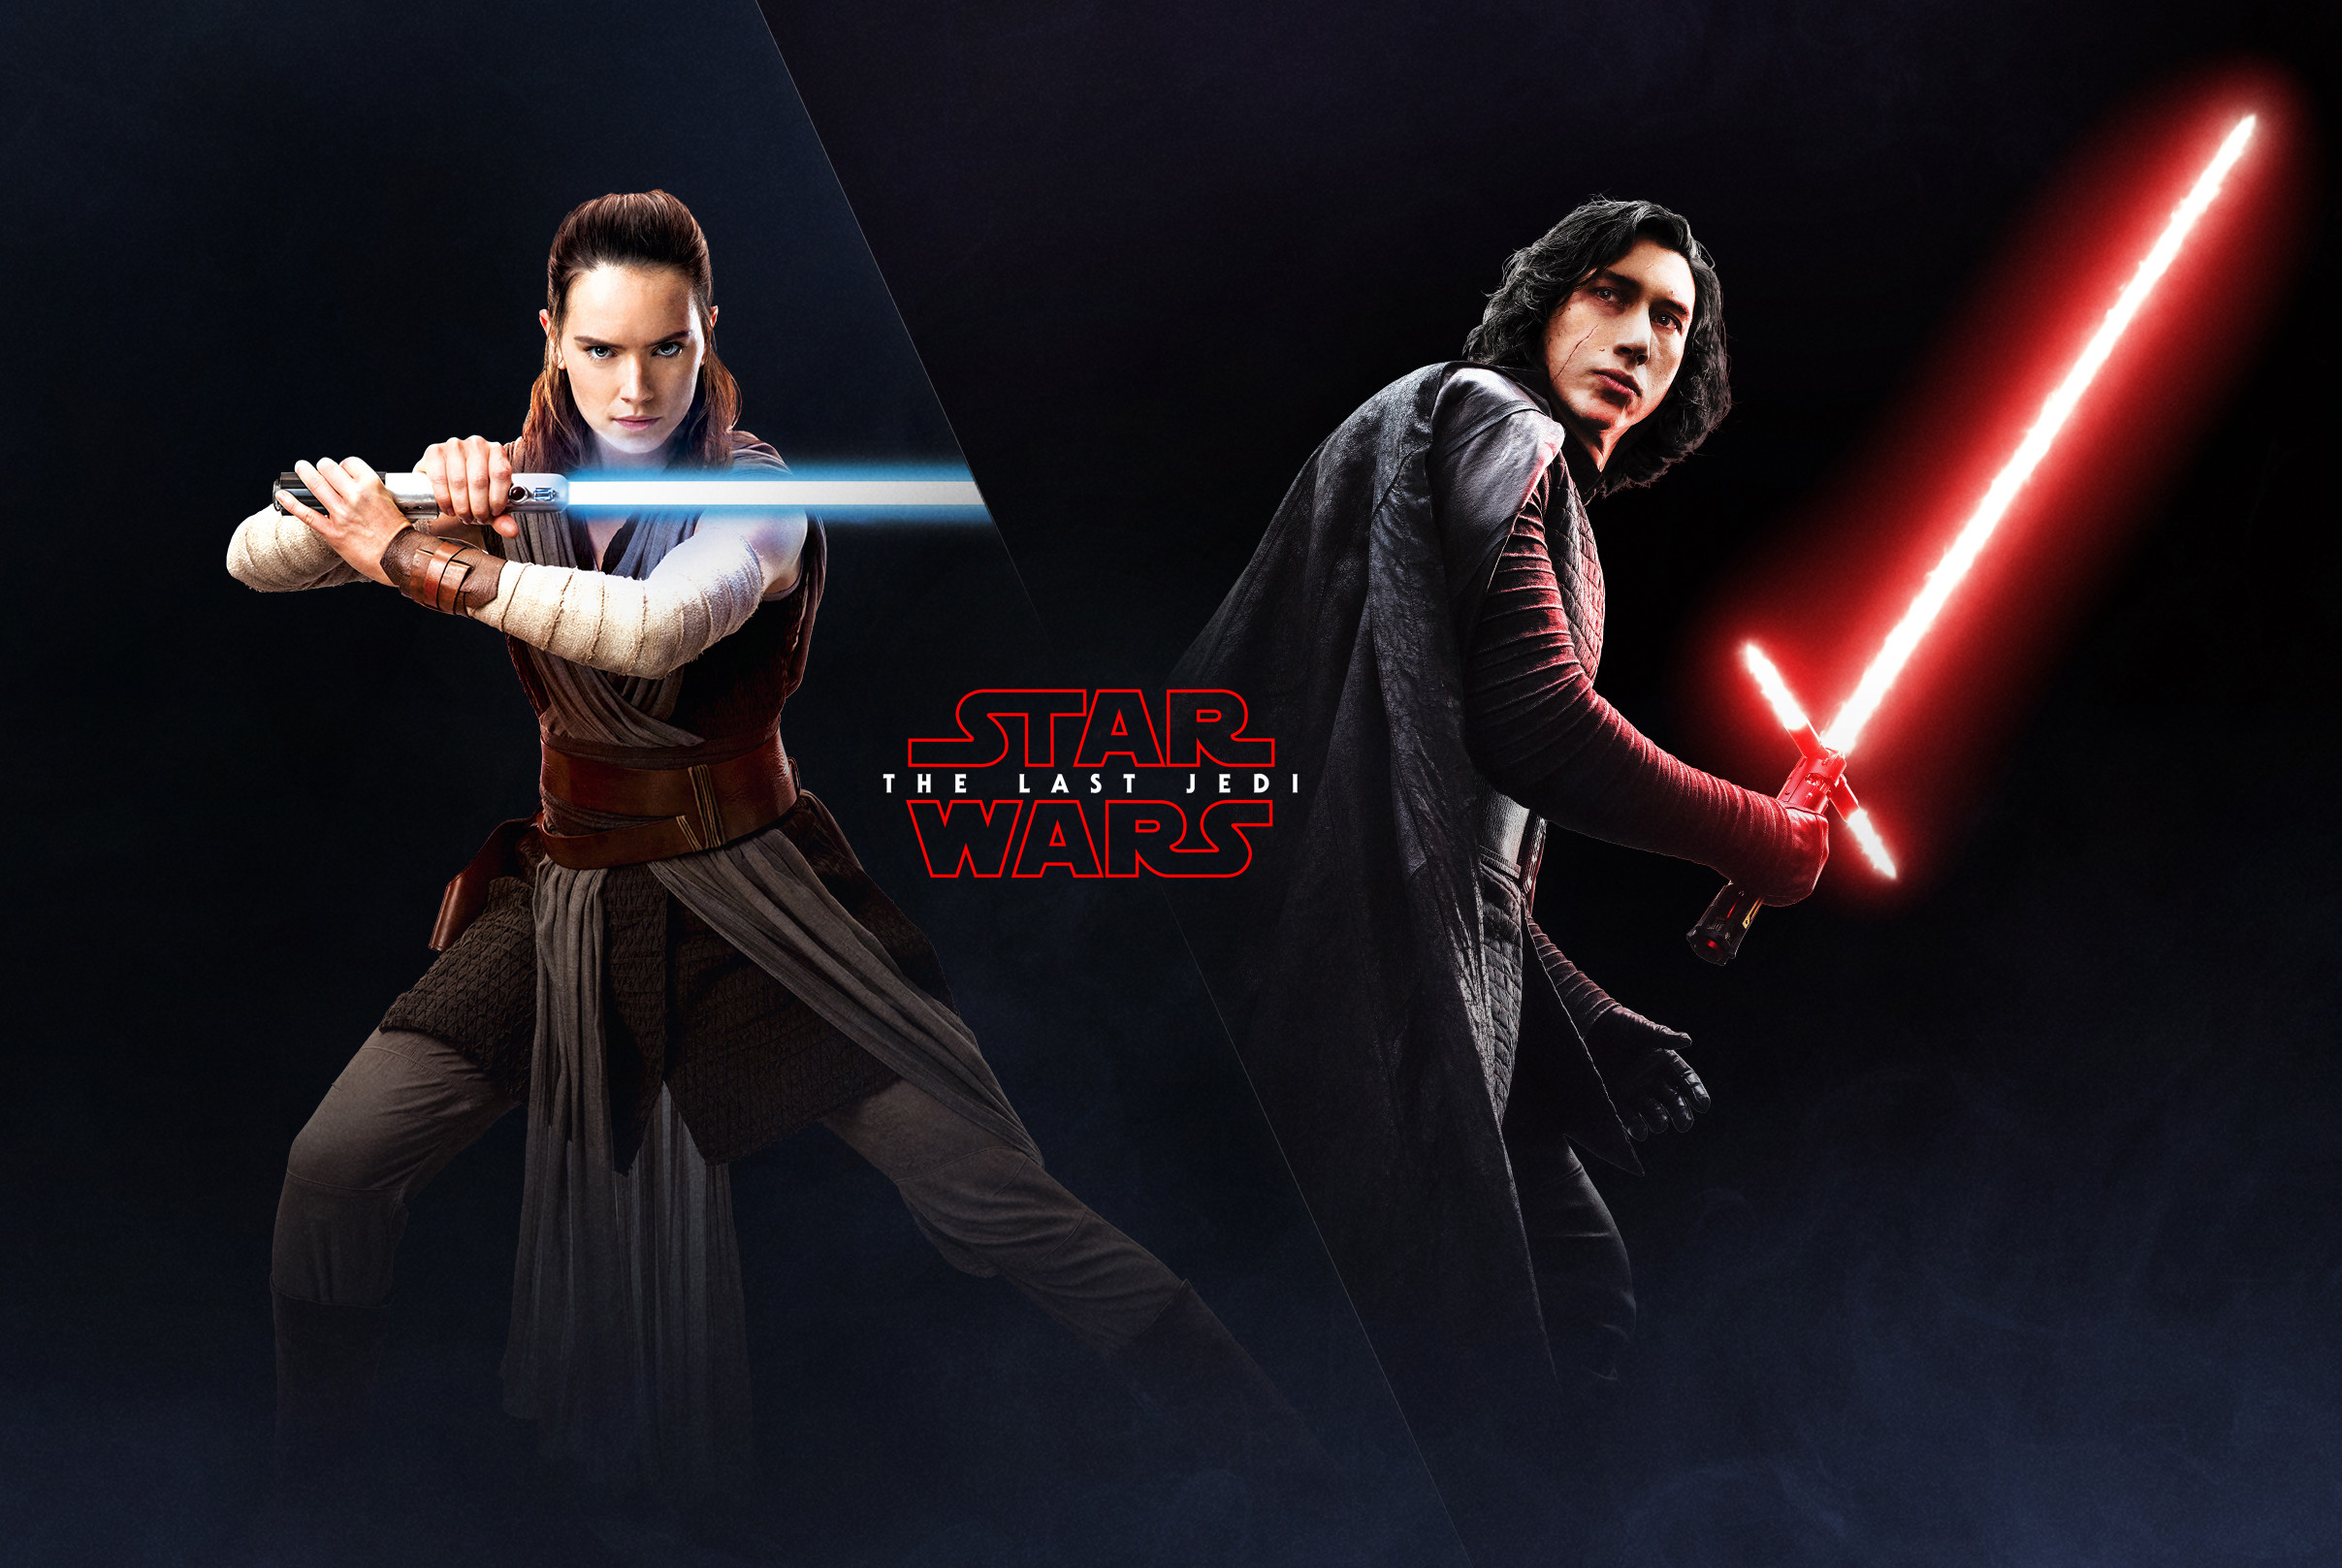 … The Last Jedi Wallpaper Rey and Kylo Ren EA Battlefront 2 Poster 2 HD